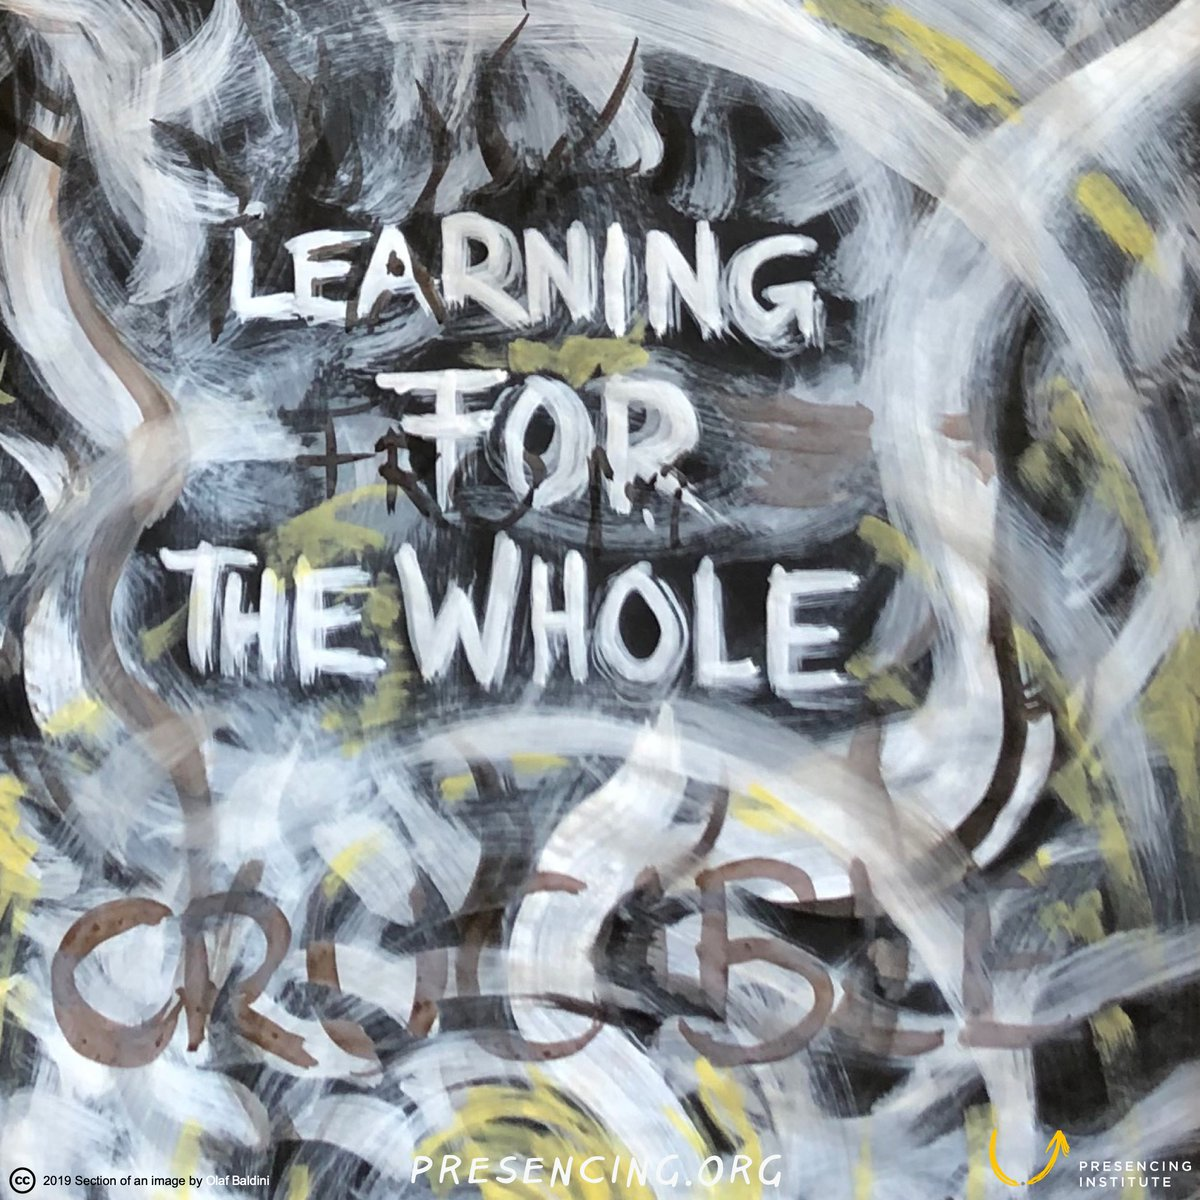 Learning for from the whole... #payitforward @presencing_inst bit.ly/35YD6j8 Image: #OlafBaldini